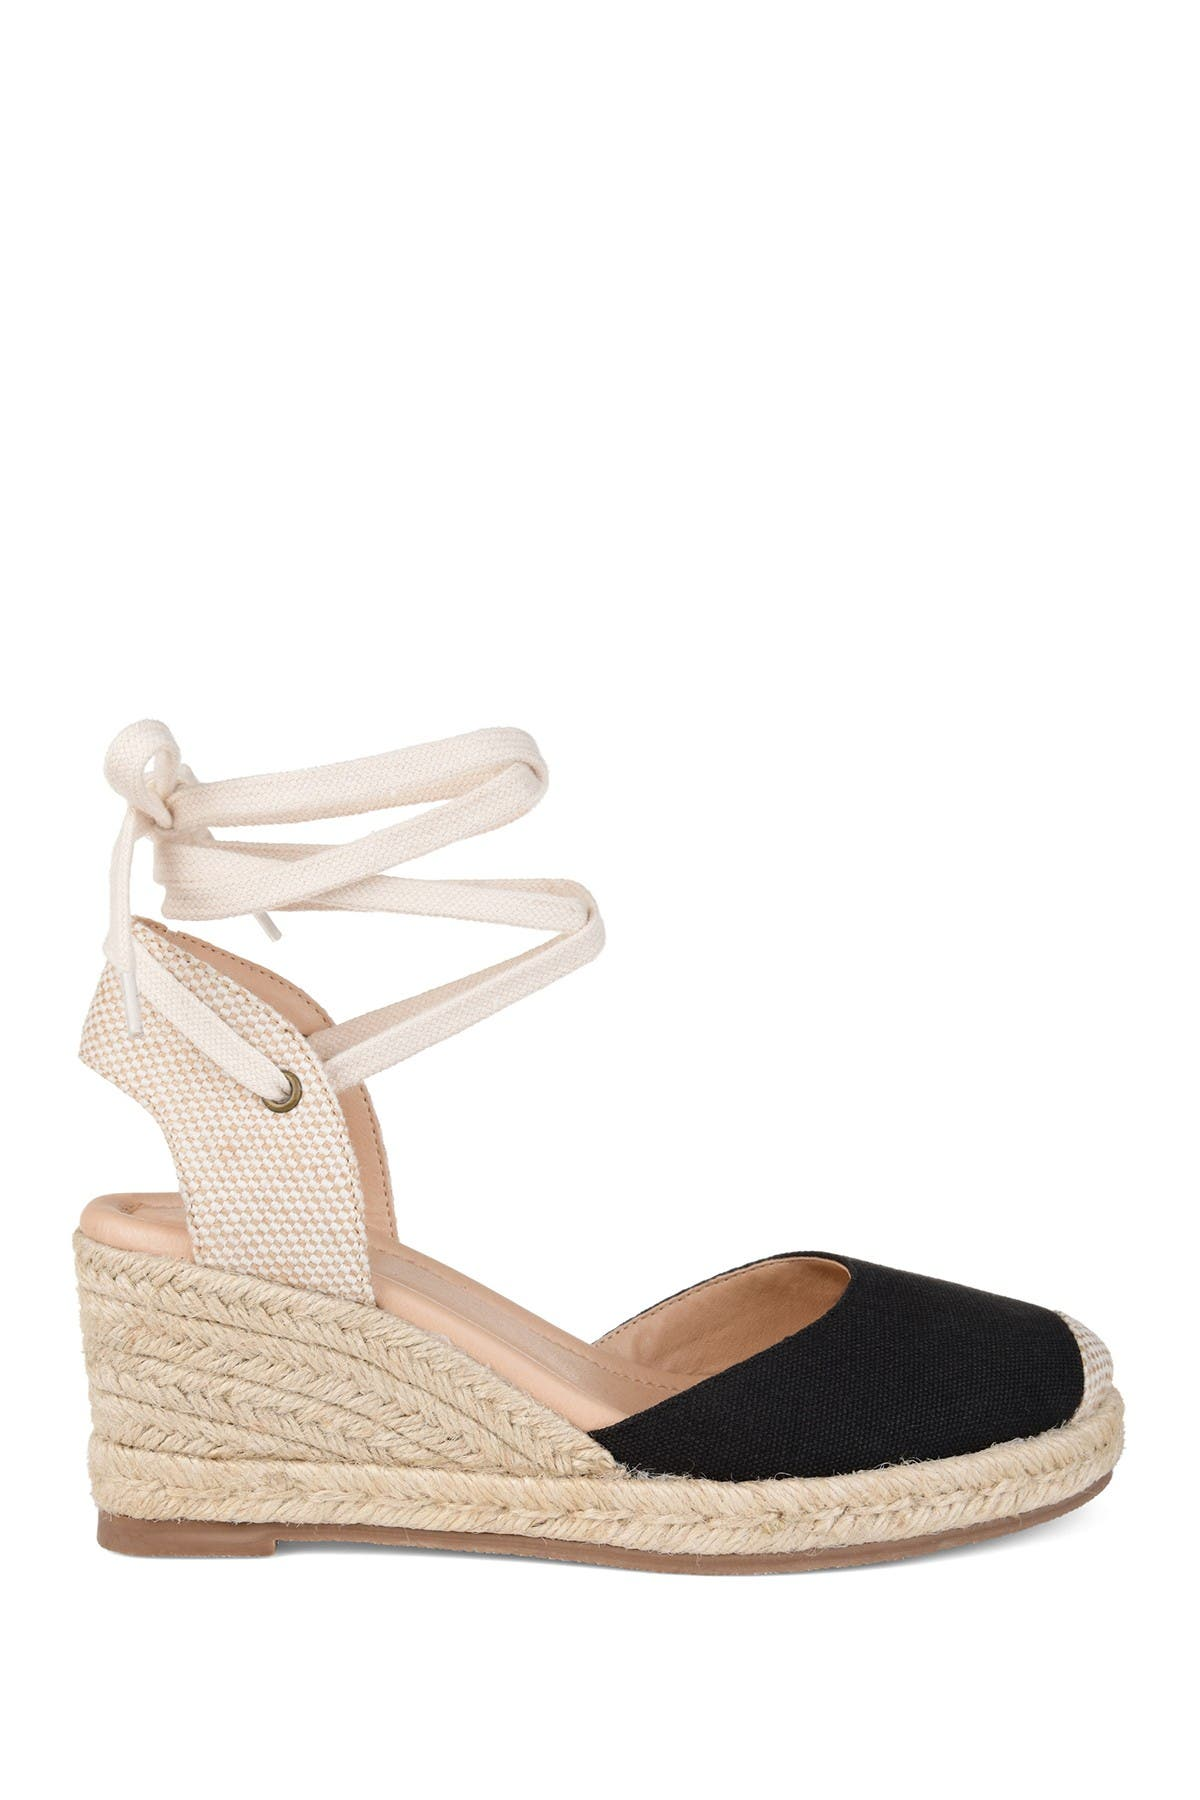 Image of JOURNEE Collection Monte Wedge Espadrille